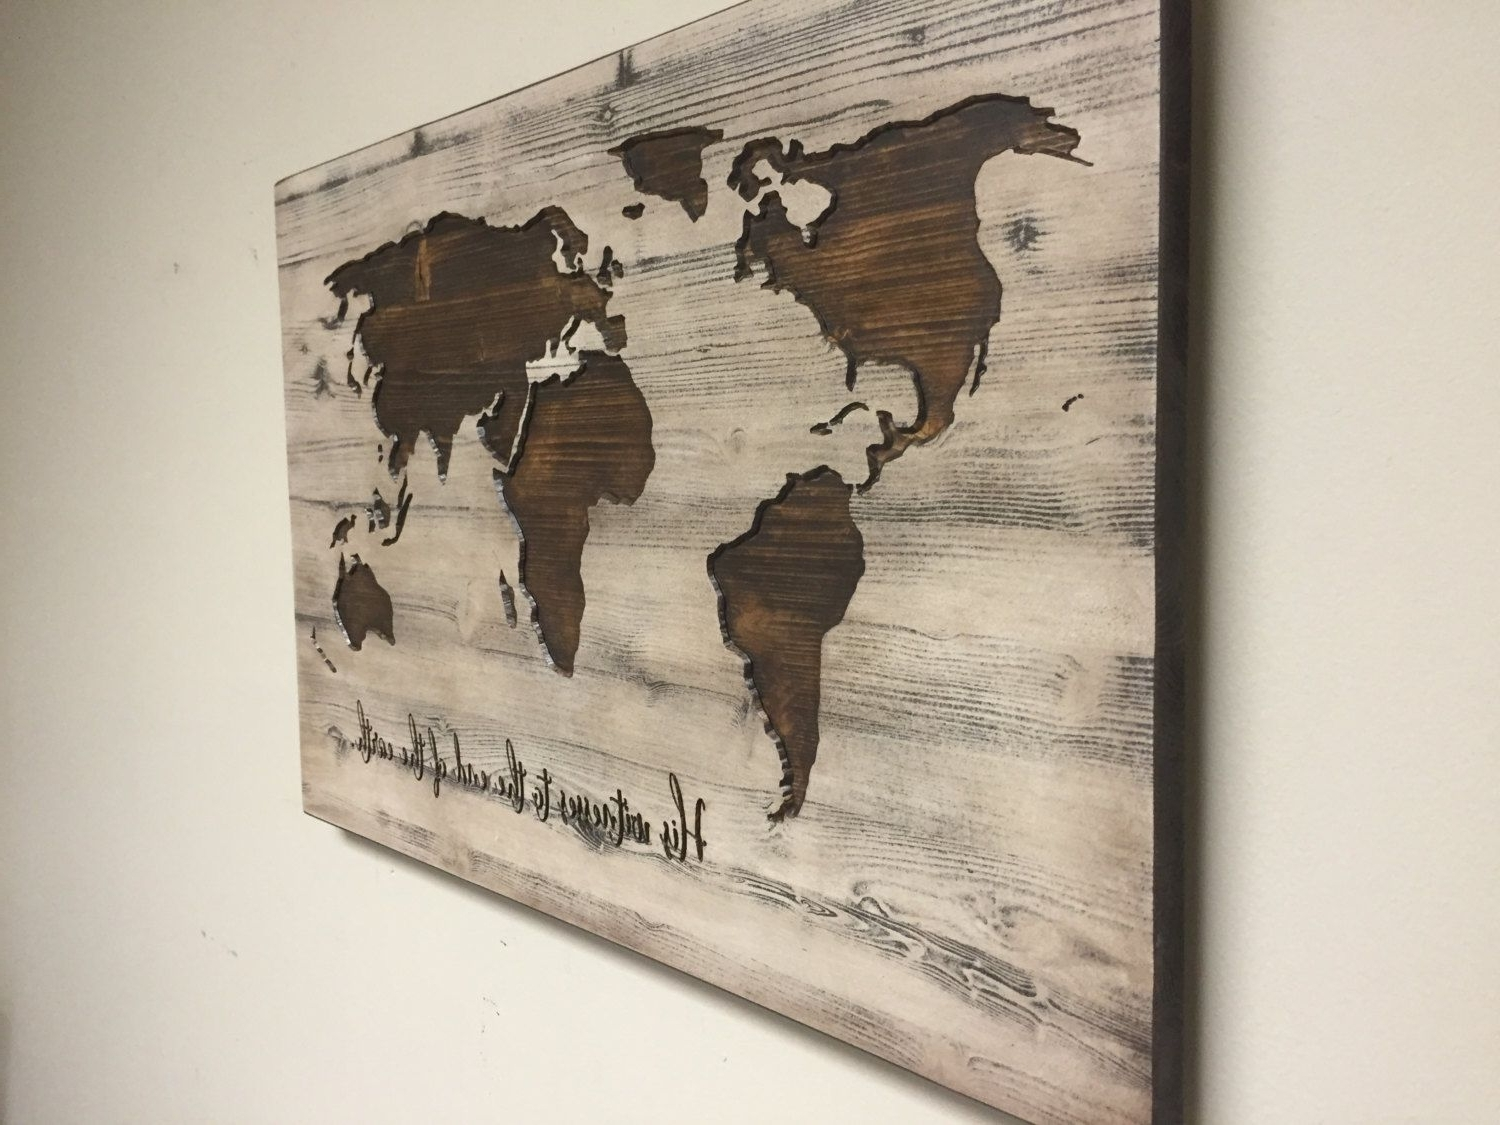 Most Current World Map Wall Art, Spiritual, Vintage Carved Wood Map, His Witness regarding Cool Map Wall Art